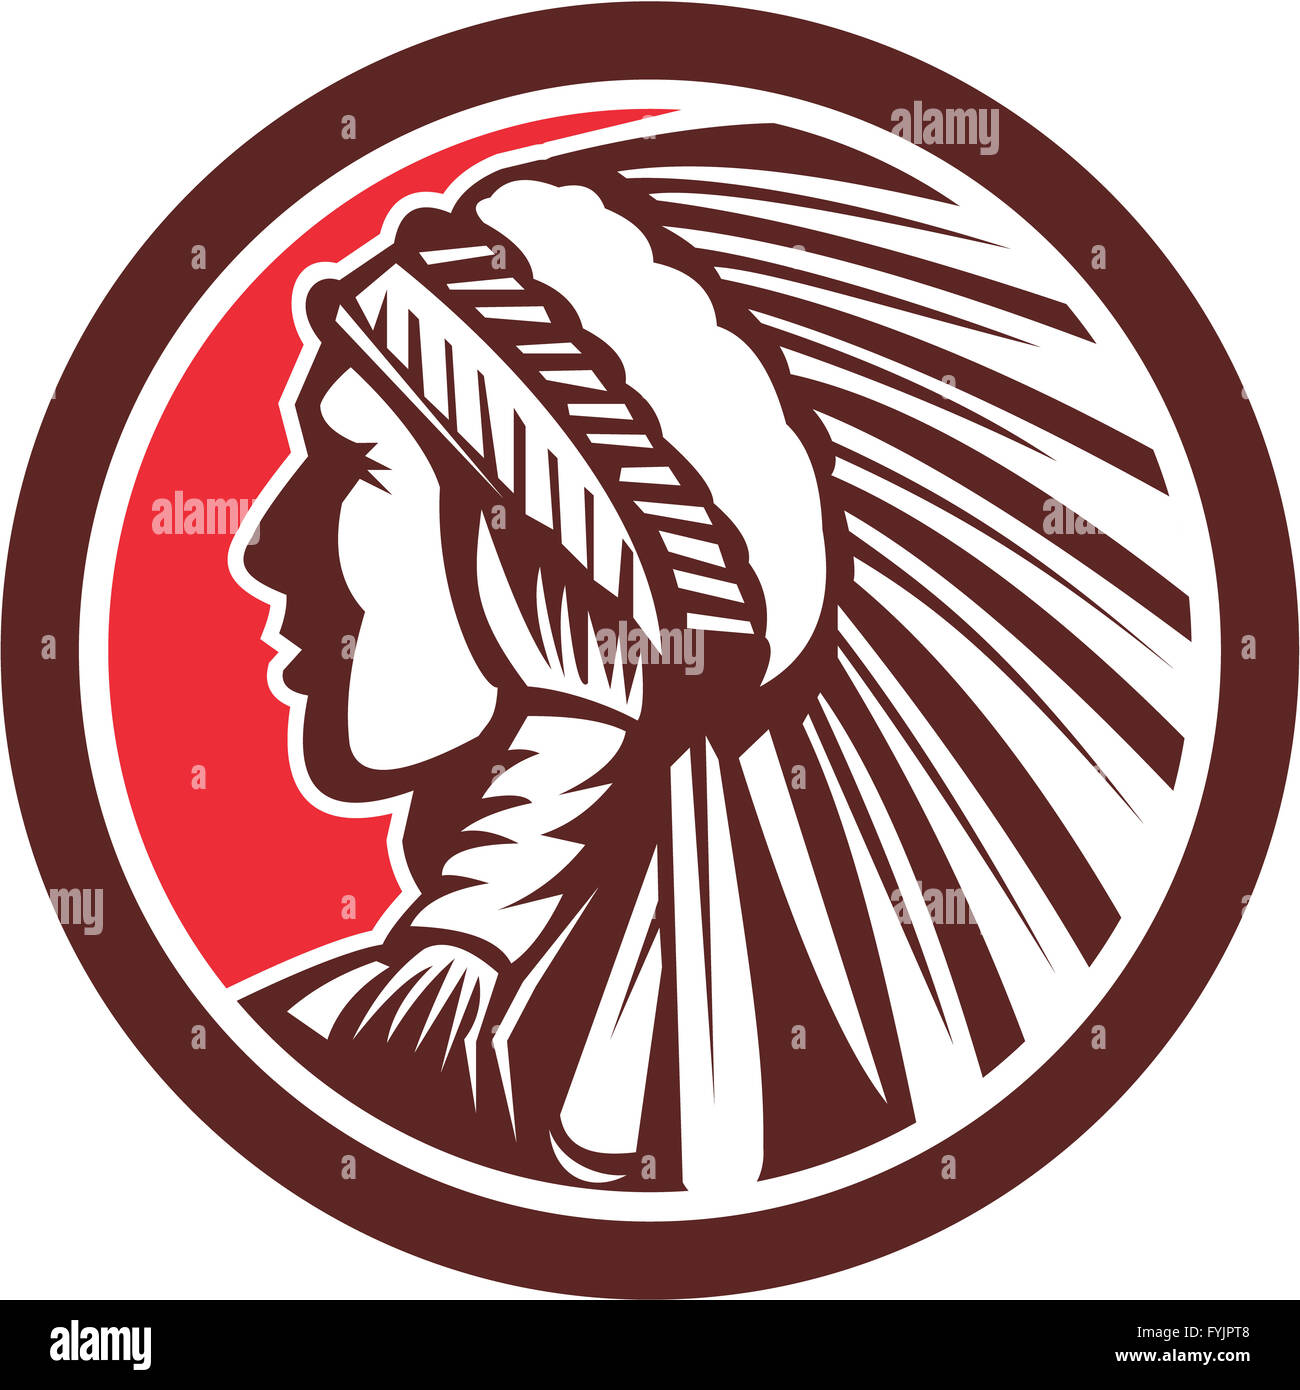 Native american warrior chief circle stock photo 103060616 alamy native american warrior chief circle buycottarizona Images